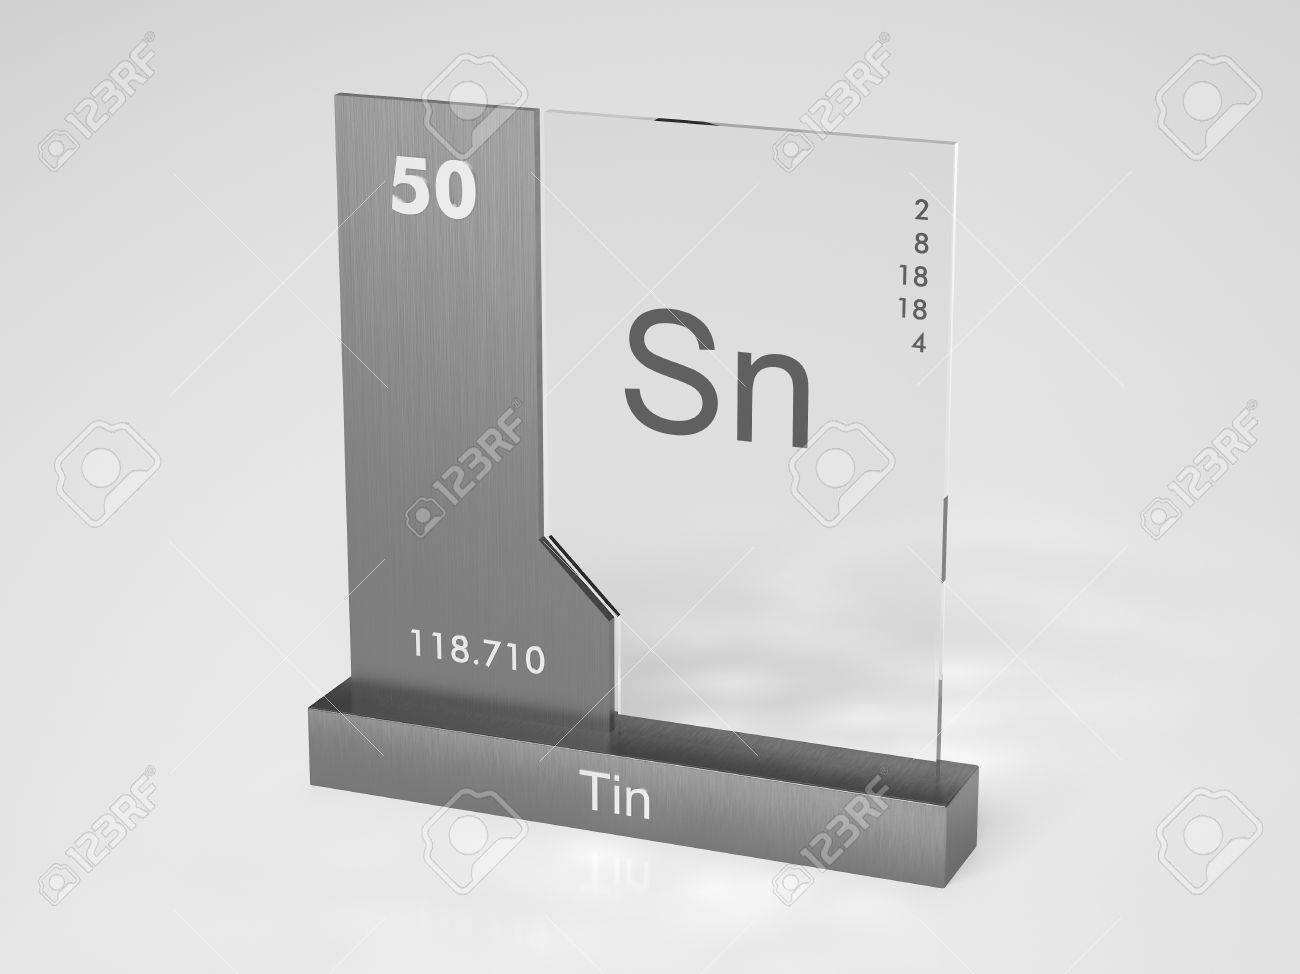 Platinum periodic table facts gallery periodic table images helium periodic table facts image collections periodic table images hydrogen periodic table facts images periodic table gamestrikefo Gallery